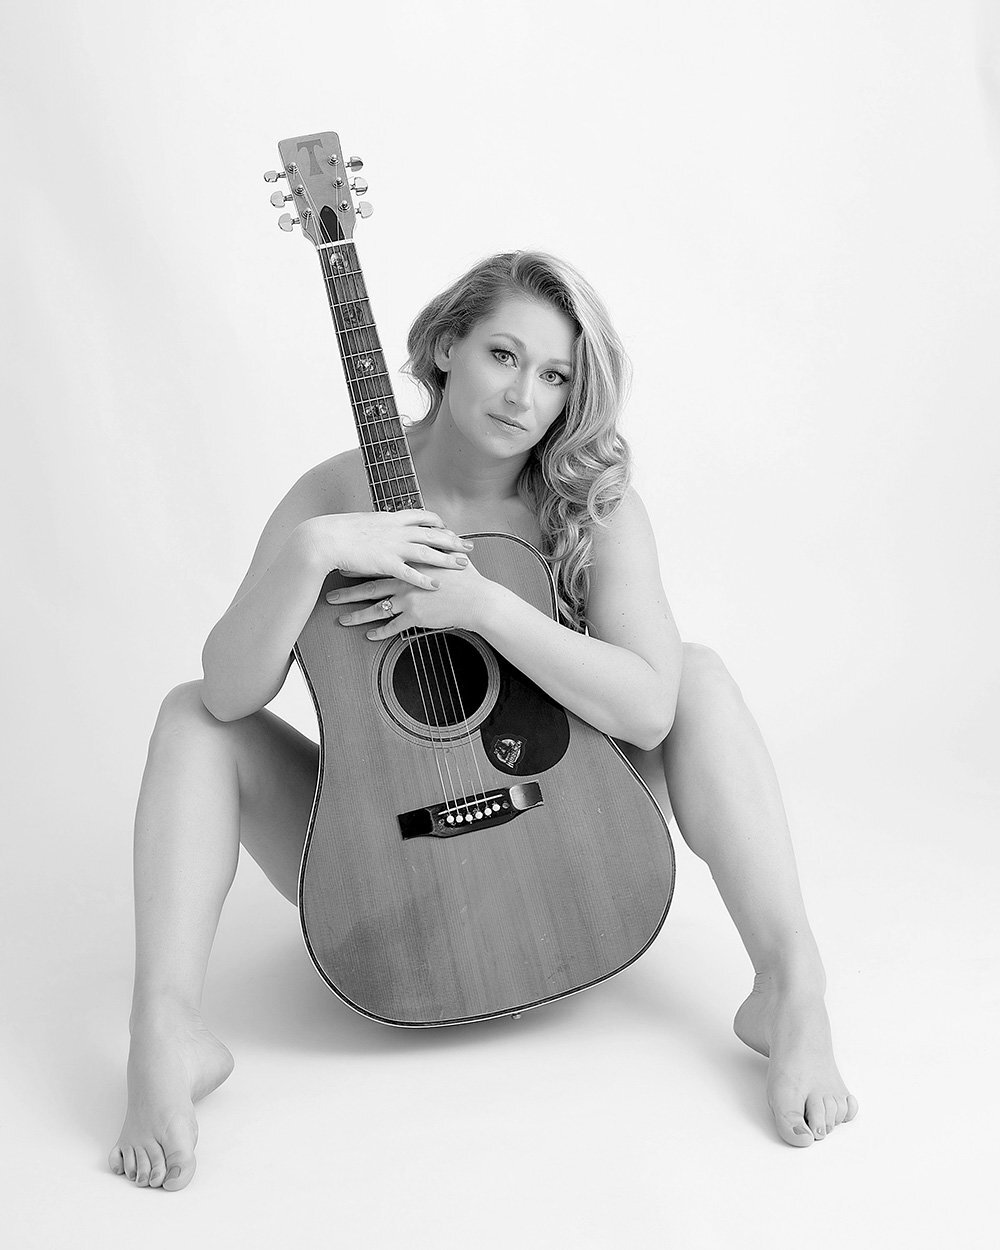 North Carolina Boudoir Photographer176